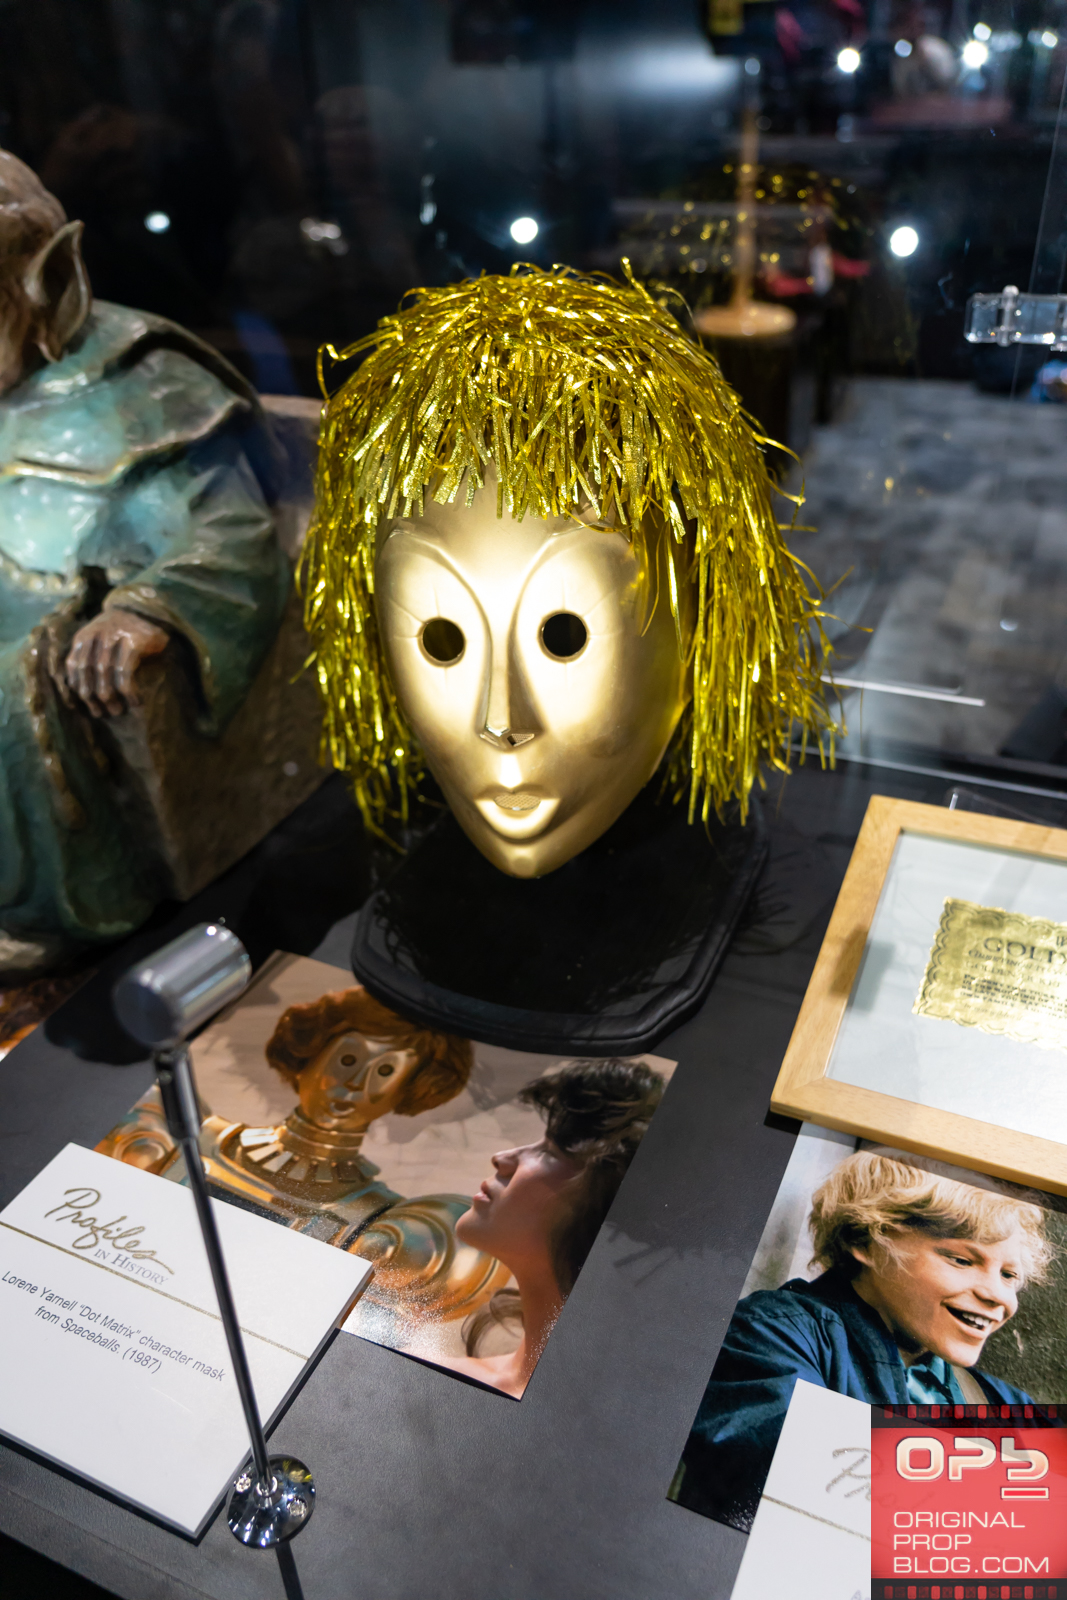 San Diego Comic Con 2018 Profiles In History Movie Props And